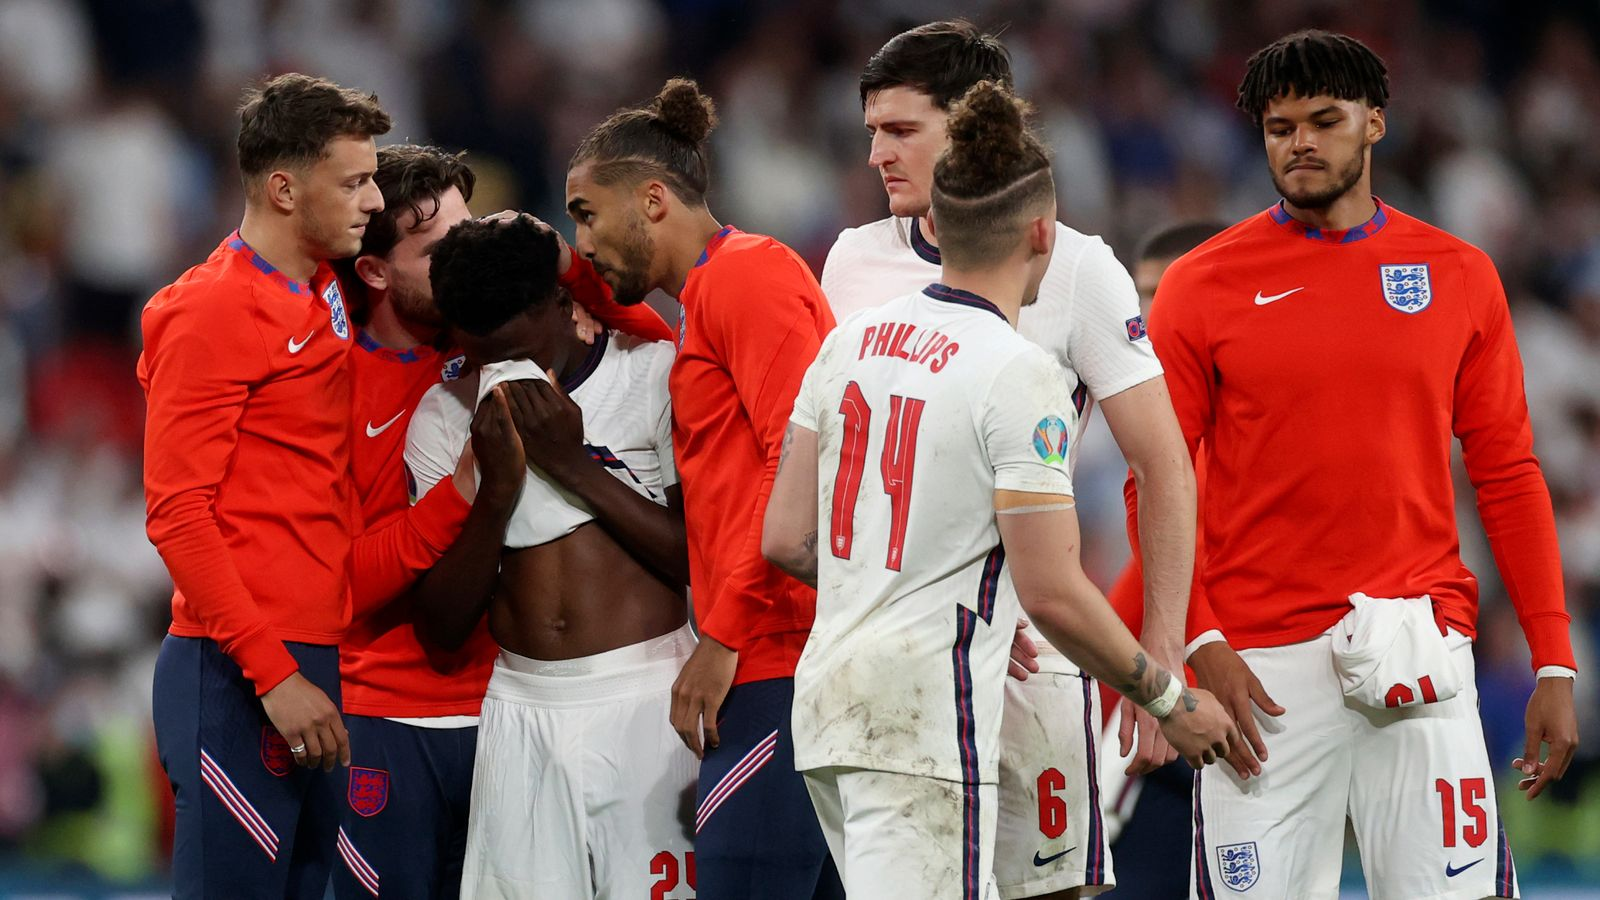 Euro 2020: 'They should be ashamed of themselves' – PM condemns racist abuse of England players